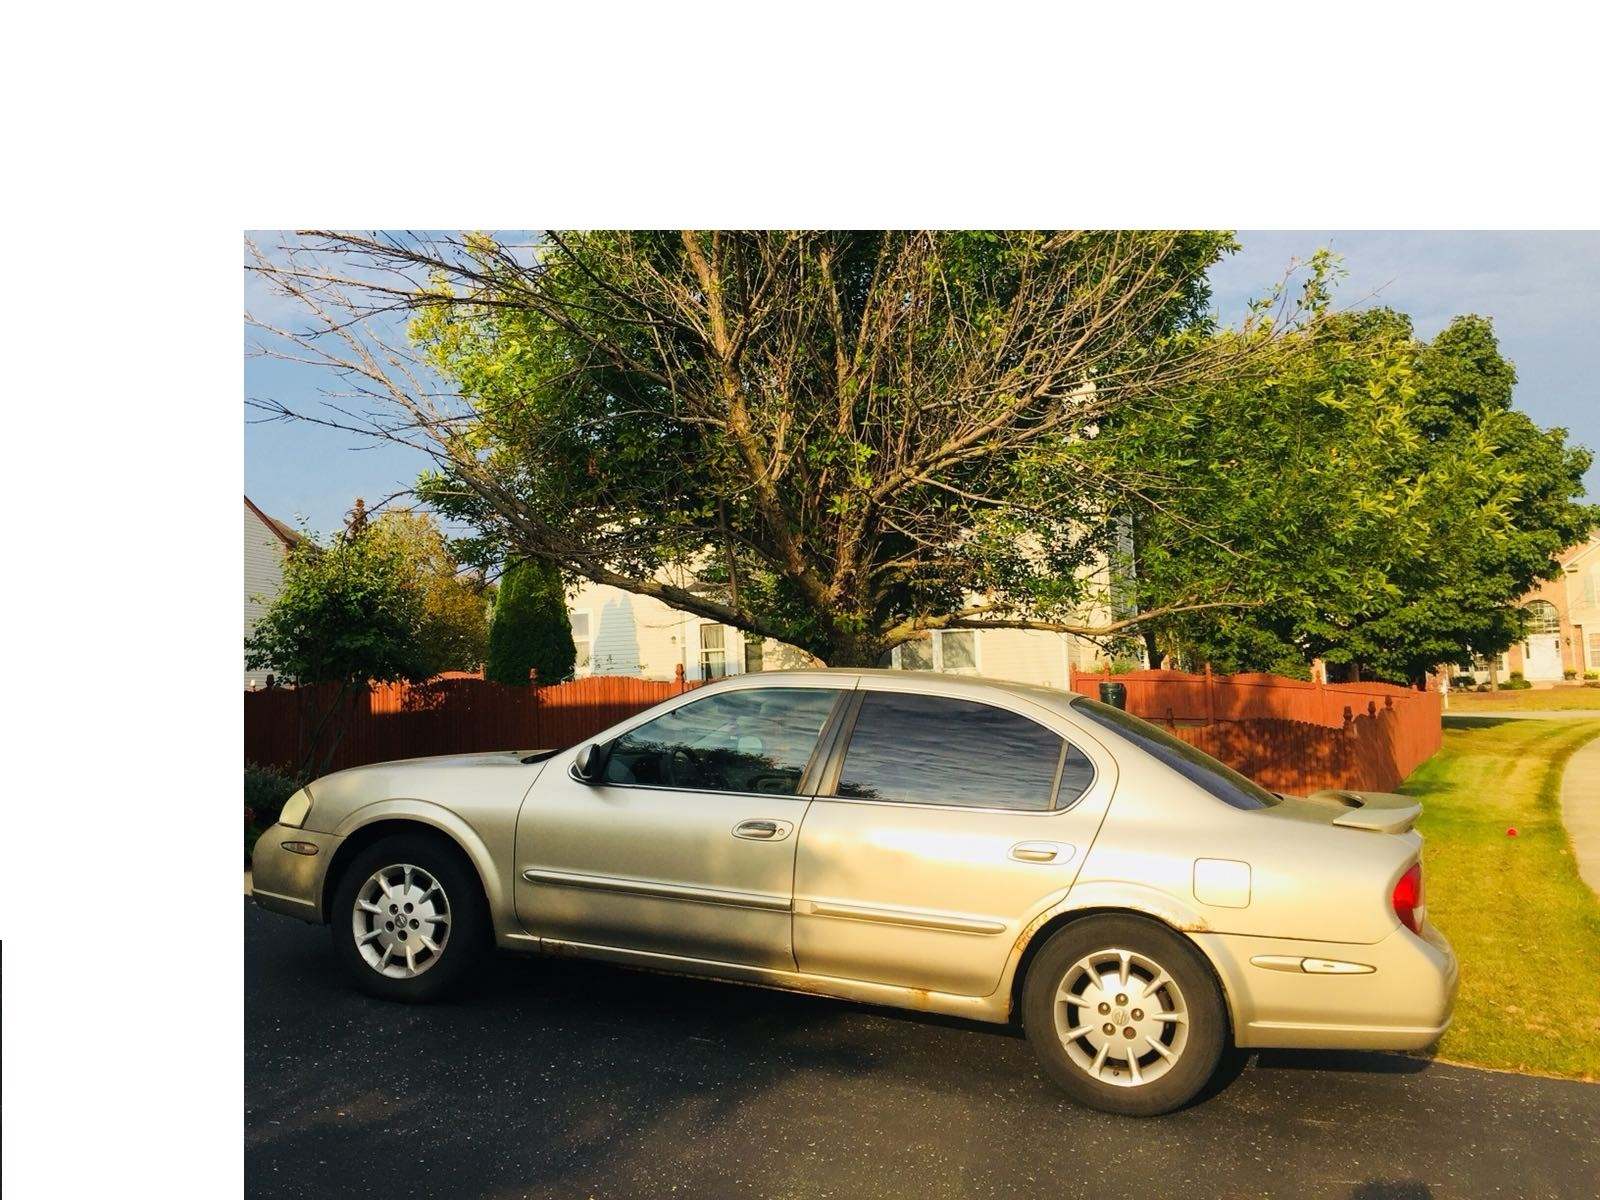 2000 Nissan Maxima GLE V6 For Sale/ Used Nissan Maxima Cars in ...